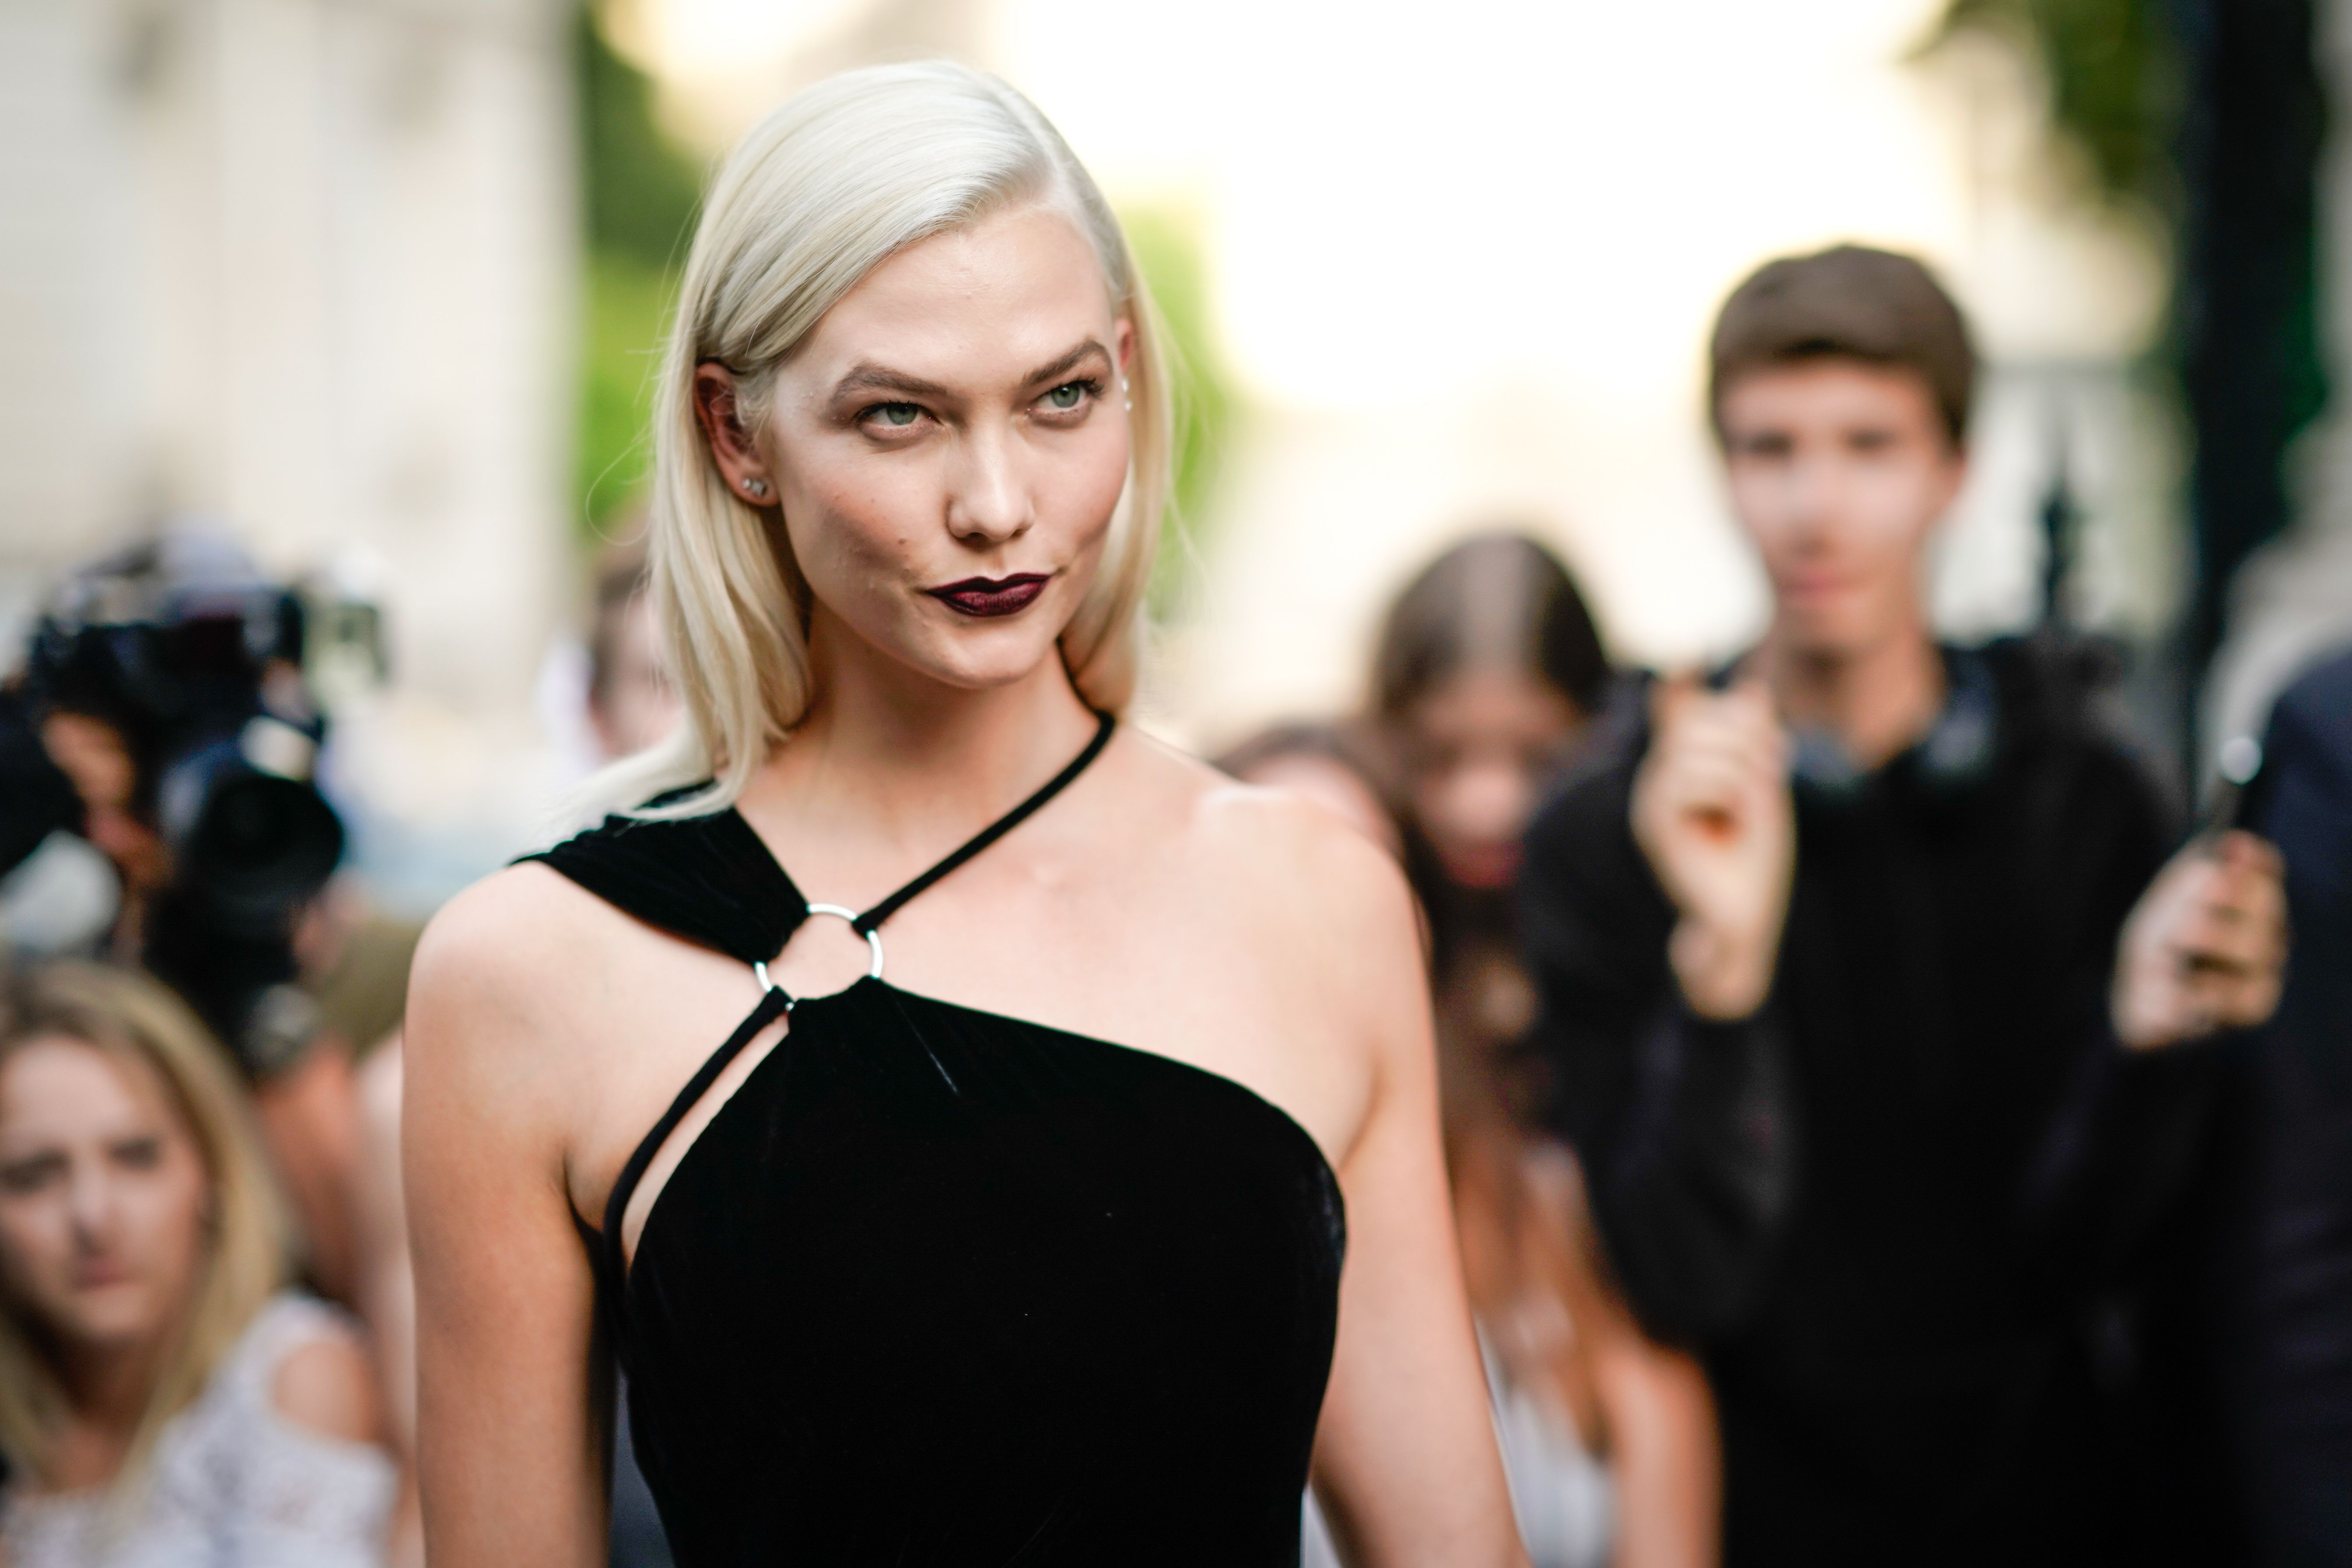 Karlie Kloss—Less Is More in Her Hair and Skincare